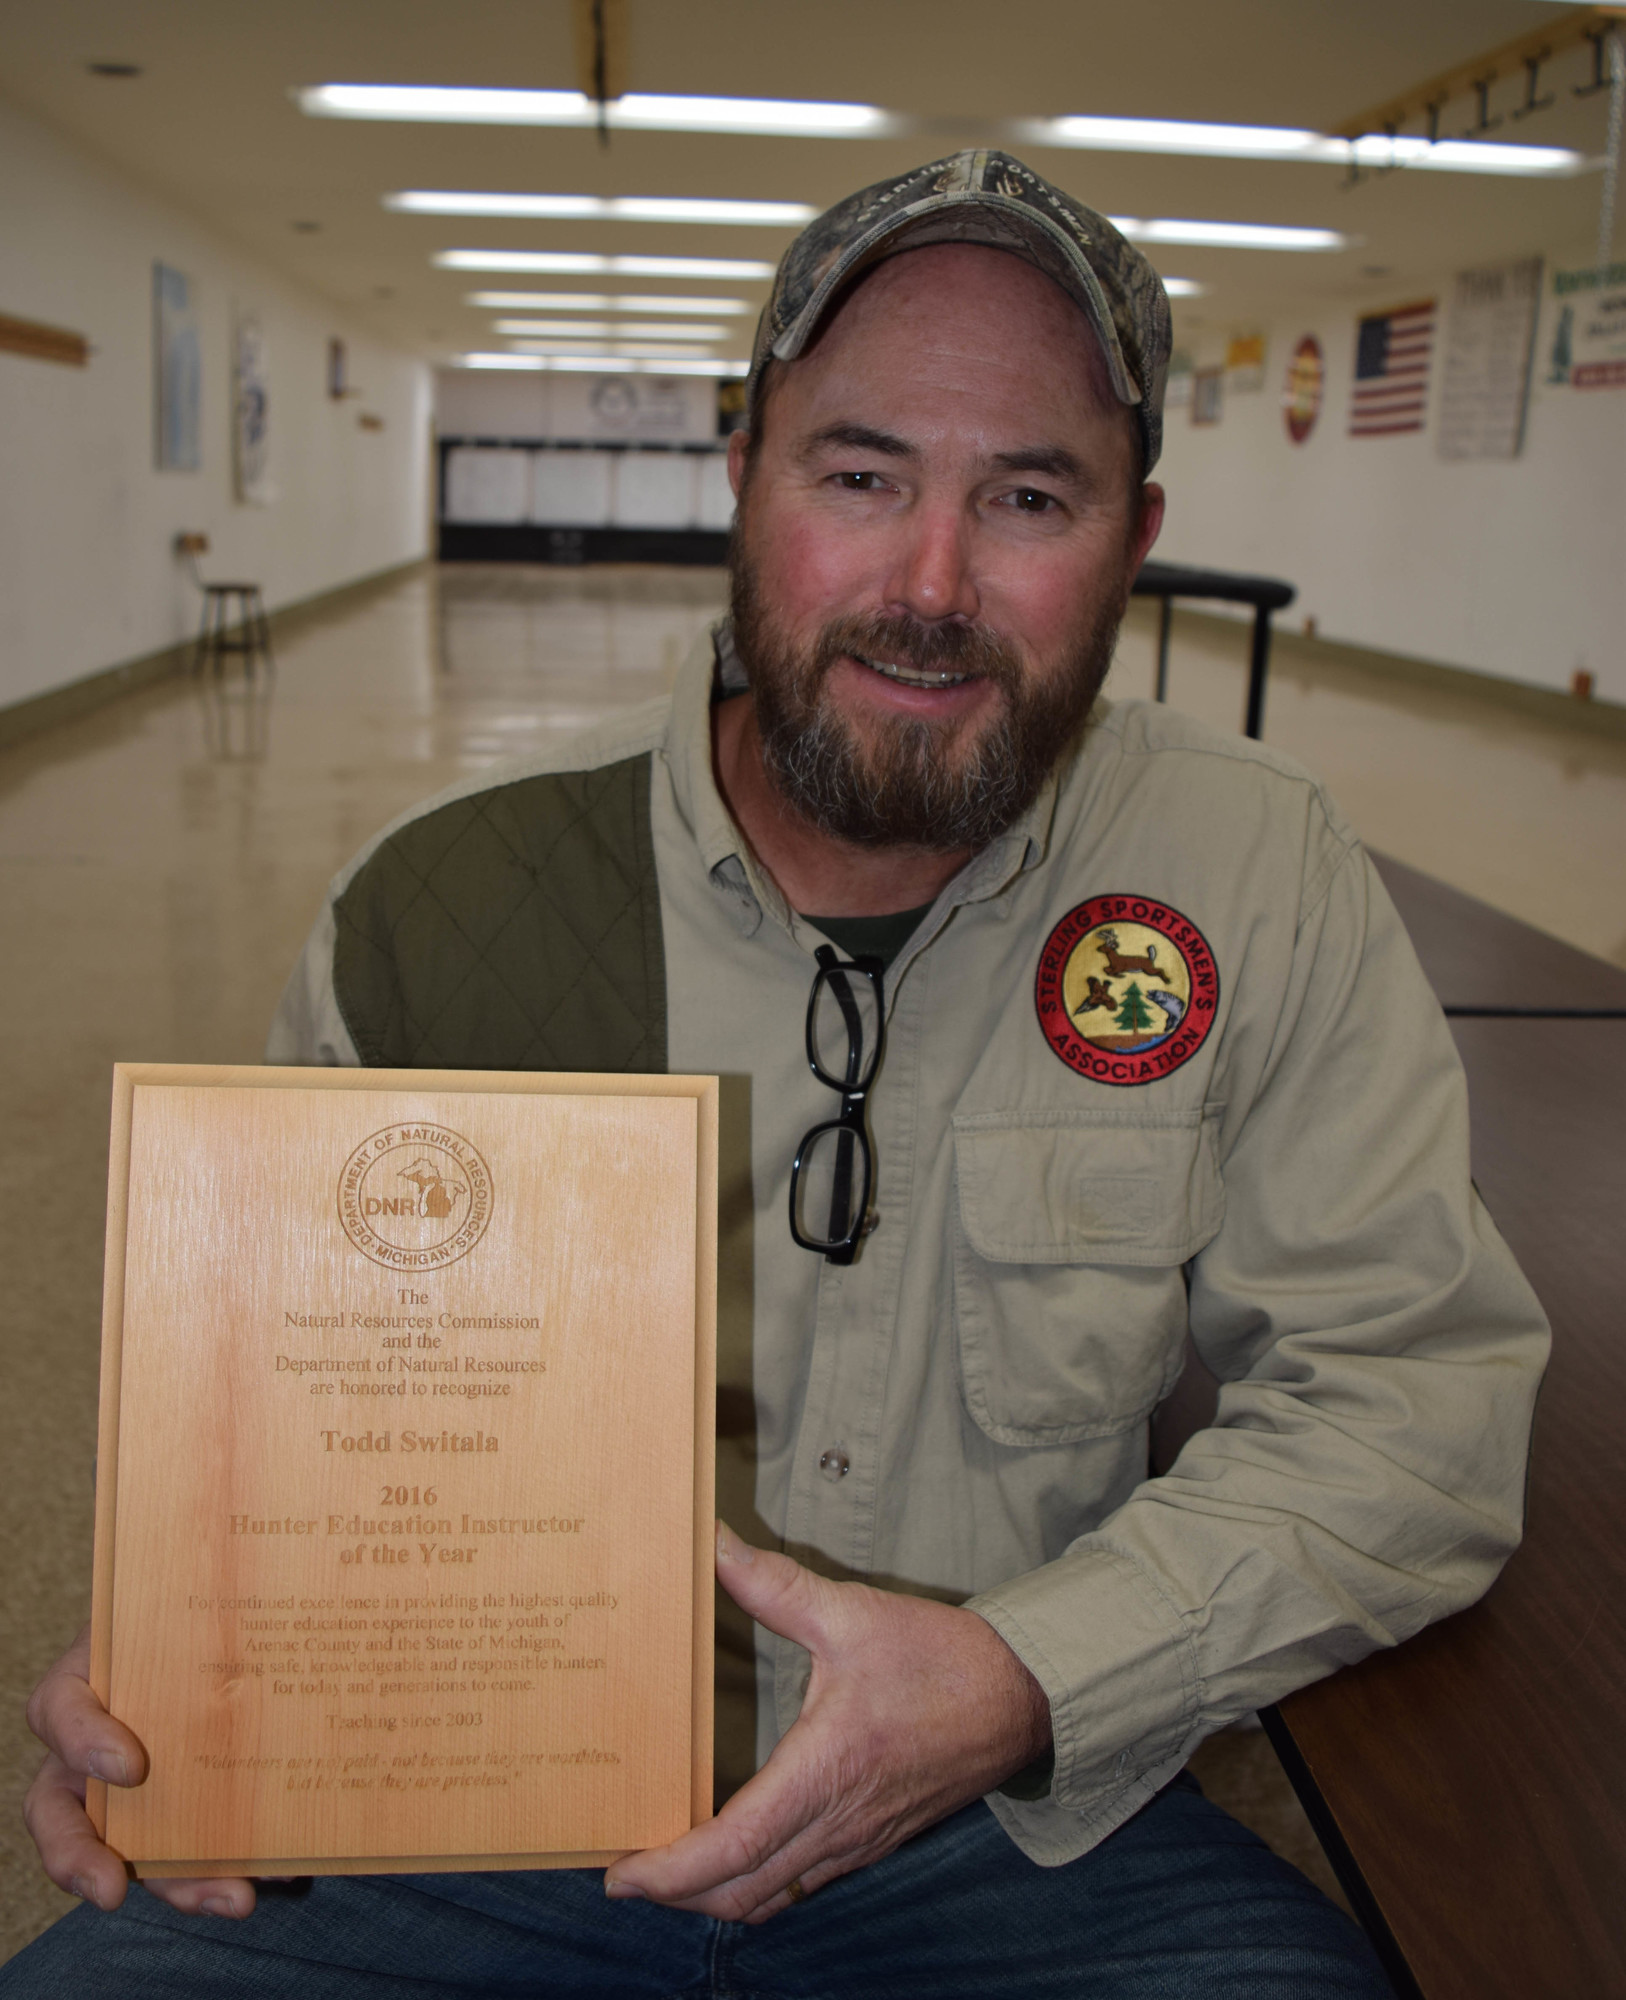 Todd Switala, 2016 Hunter Safety Instructor of the Year displays a plaque recognizing his service.